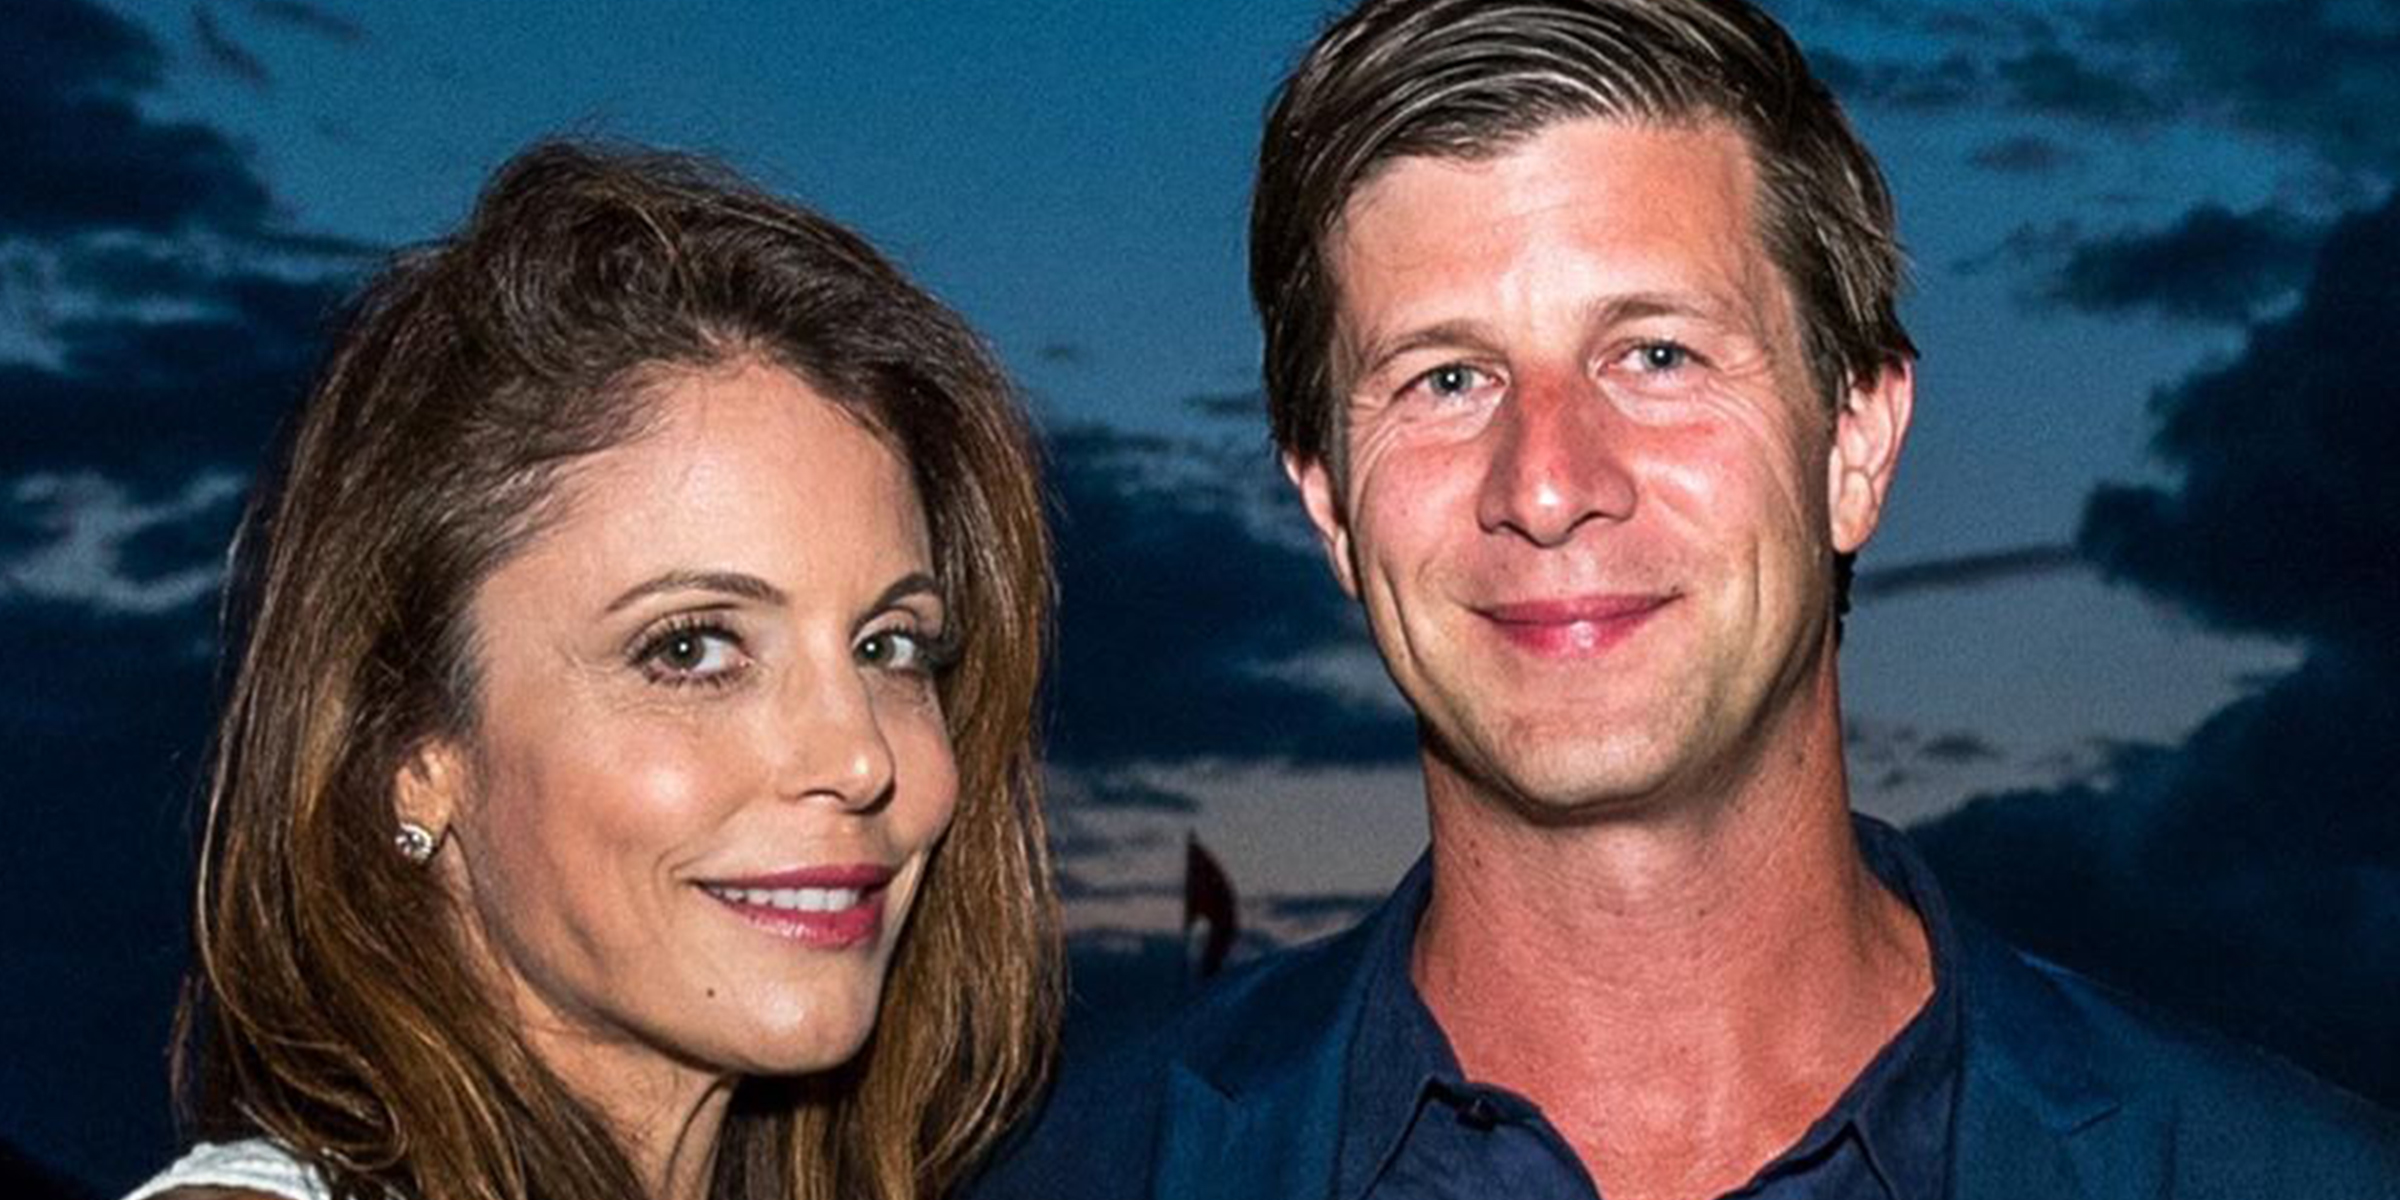 Bethenny Frankel's boyfriend writes gushing tribute on her 49th birthday